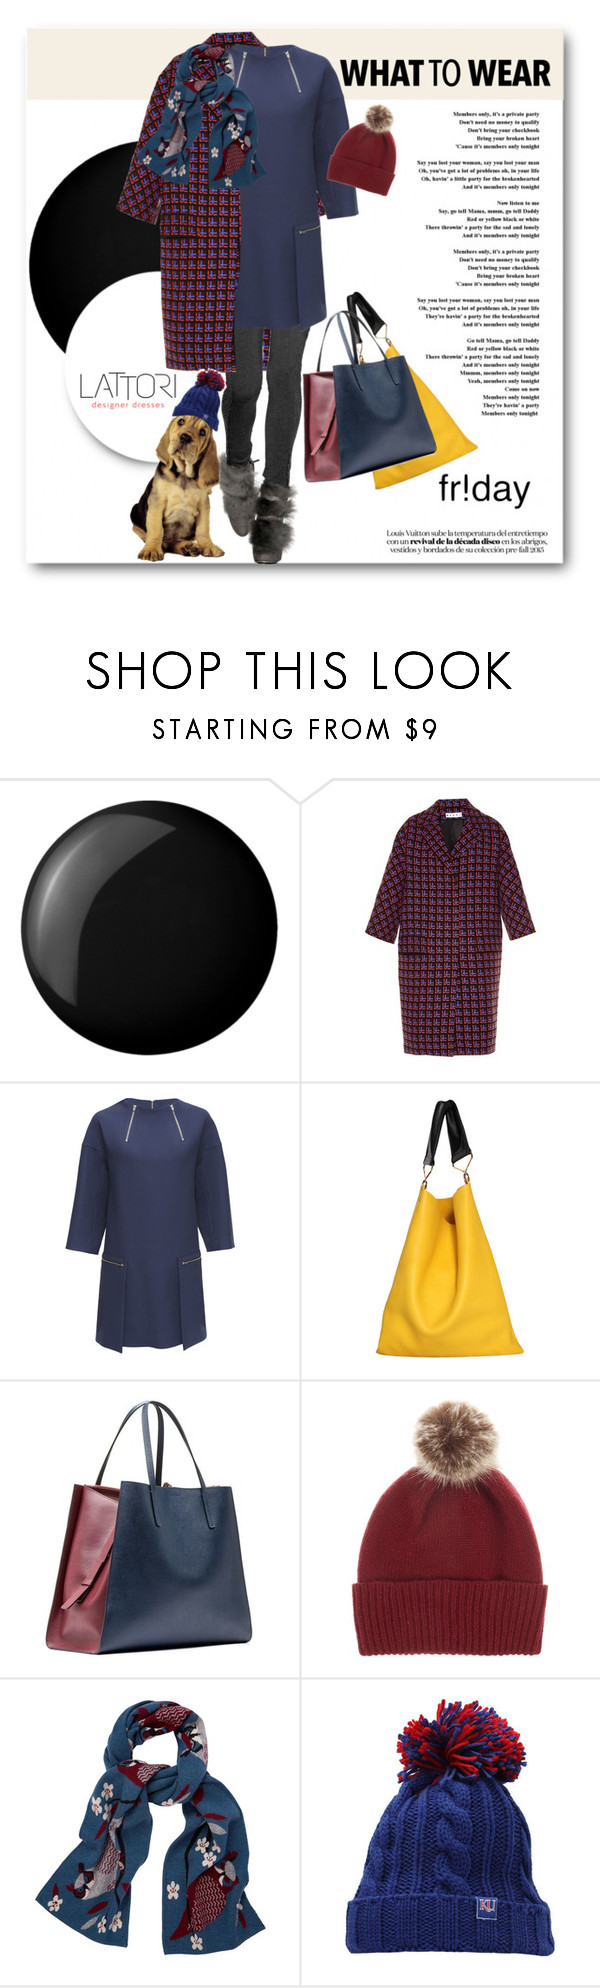 """What to Wear: Black Friday Shopping"" by svijetlana ❤ liked on Polyvore featuring moda, Essie, Lattori, Marni, Helen Moore, adidas, polyvoreeditorial, shoptilyoudrop y lattori"